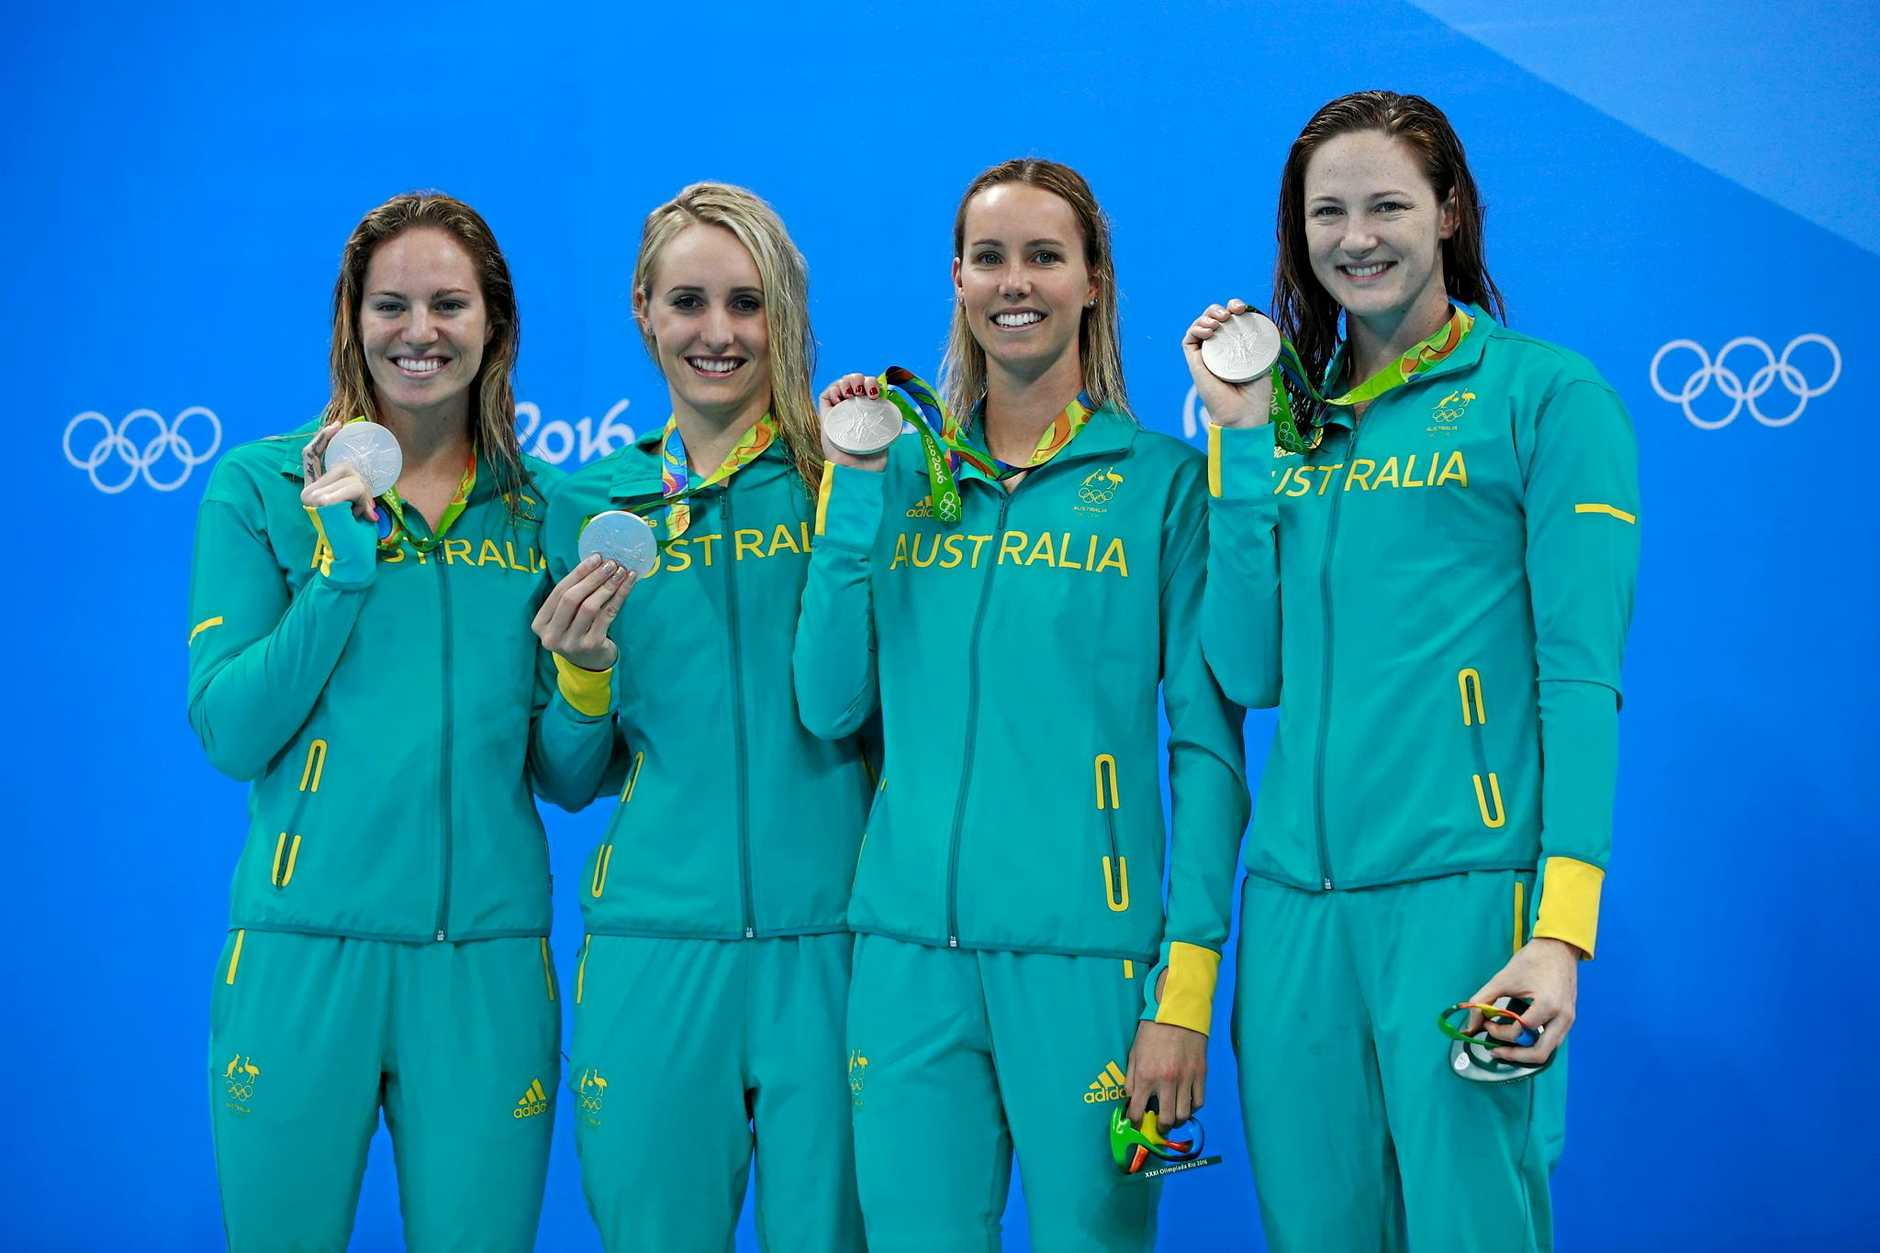 RIO DE JANEIRO, BRAZIL - AUGUST 13:  Silver medalists Emily Seebohm, Taylor McKeown, Emma McKeon and Cate Campbell of Australia celebrate on the podium during the medal ceremony for the Women's 4 x 100m Medley Relay Final on Day 8 of the Rio 2016 Olympic Games at the Olympic Aquatics Stadium on August 13, 2016 in Rio de Janeiro, Brazil.  (Photo by Adam Pretty/Getty Images)